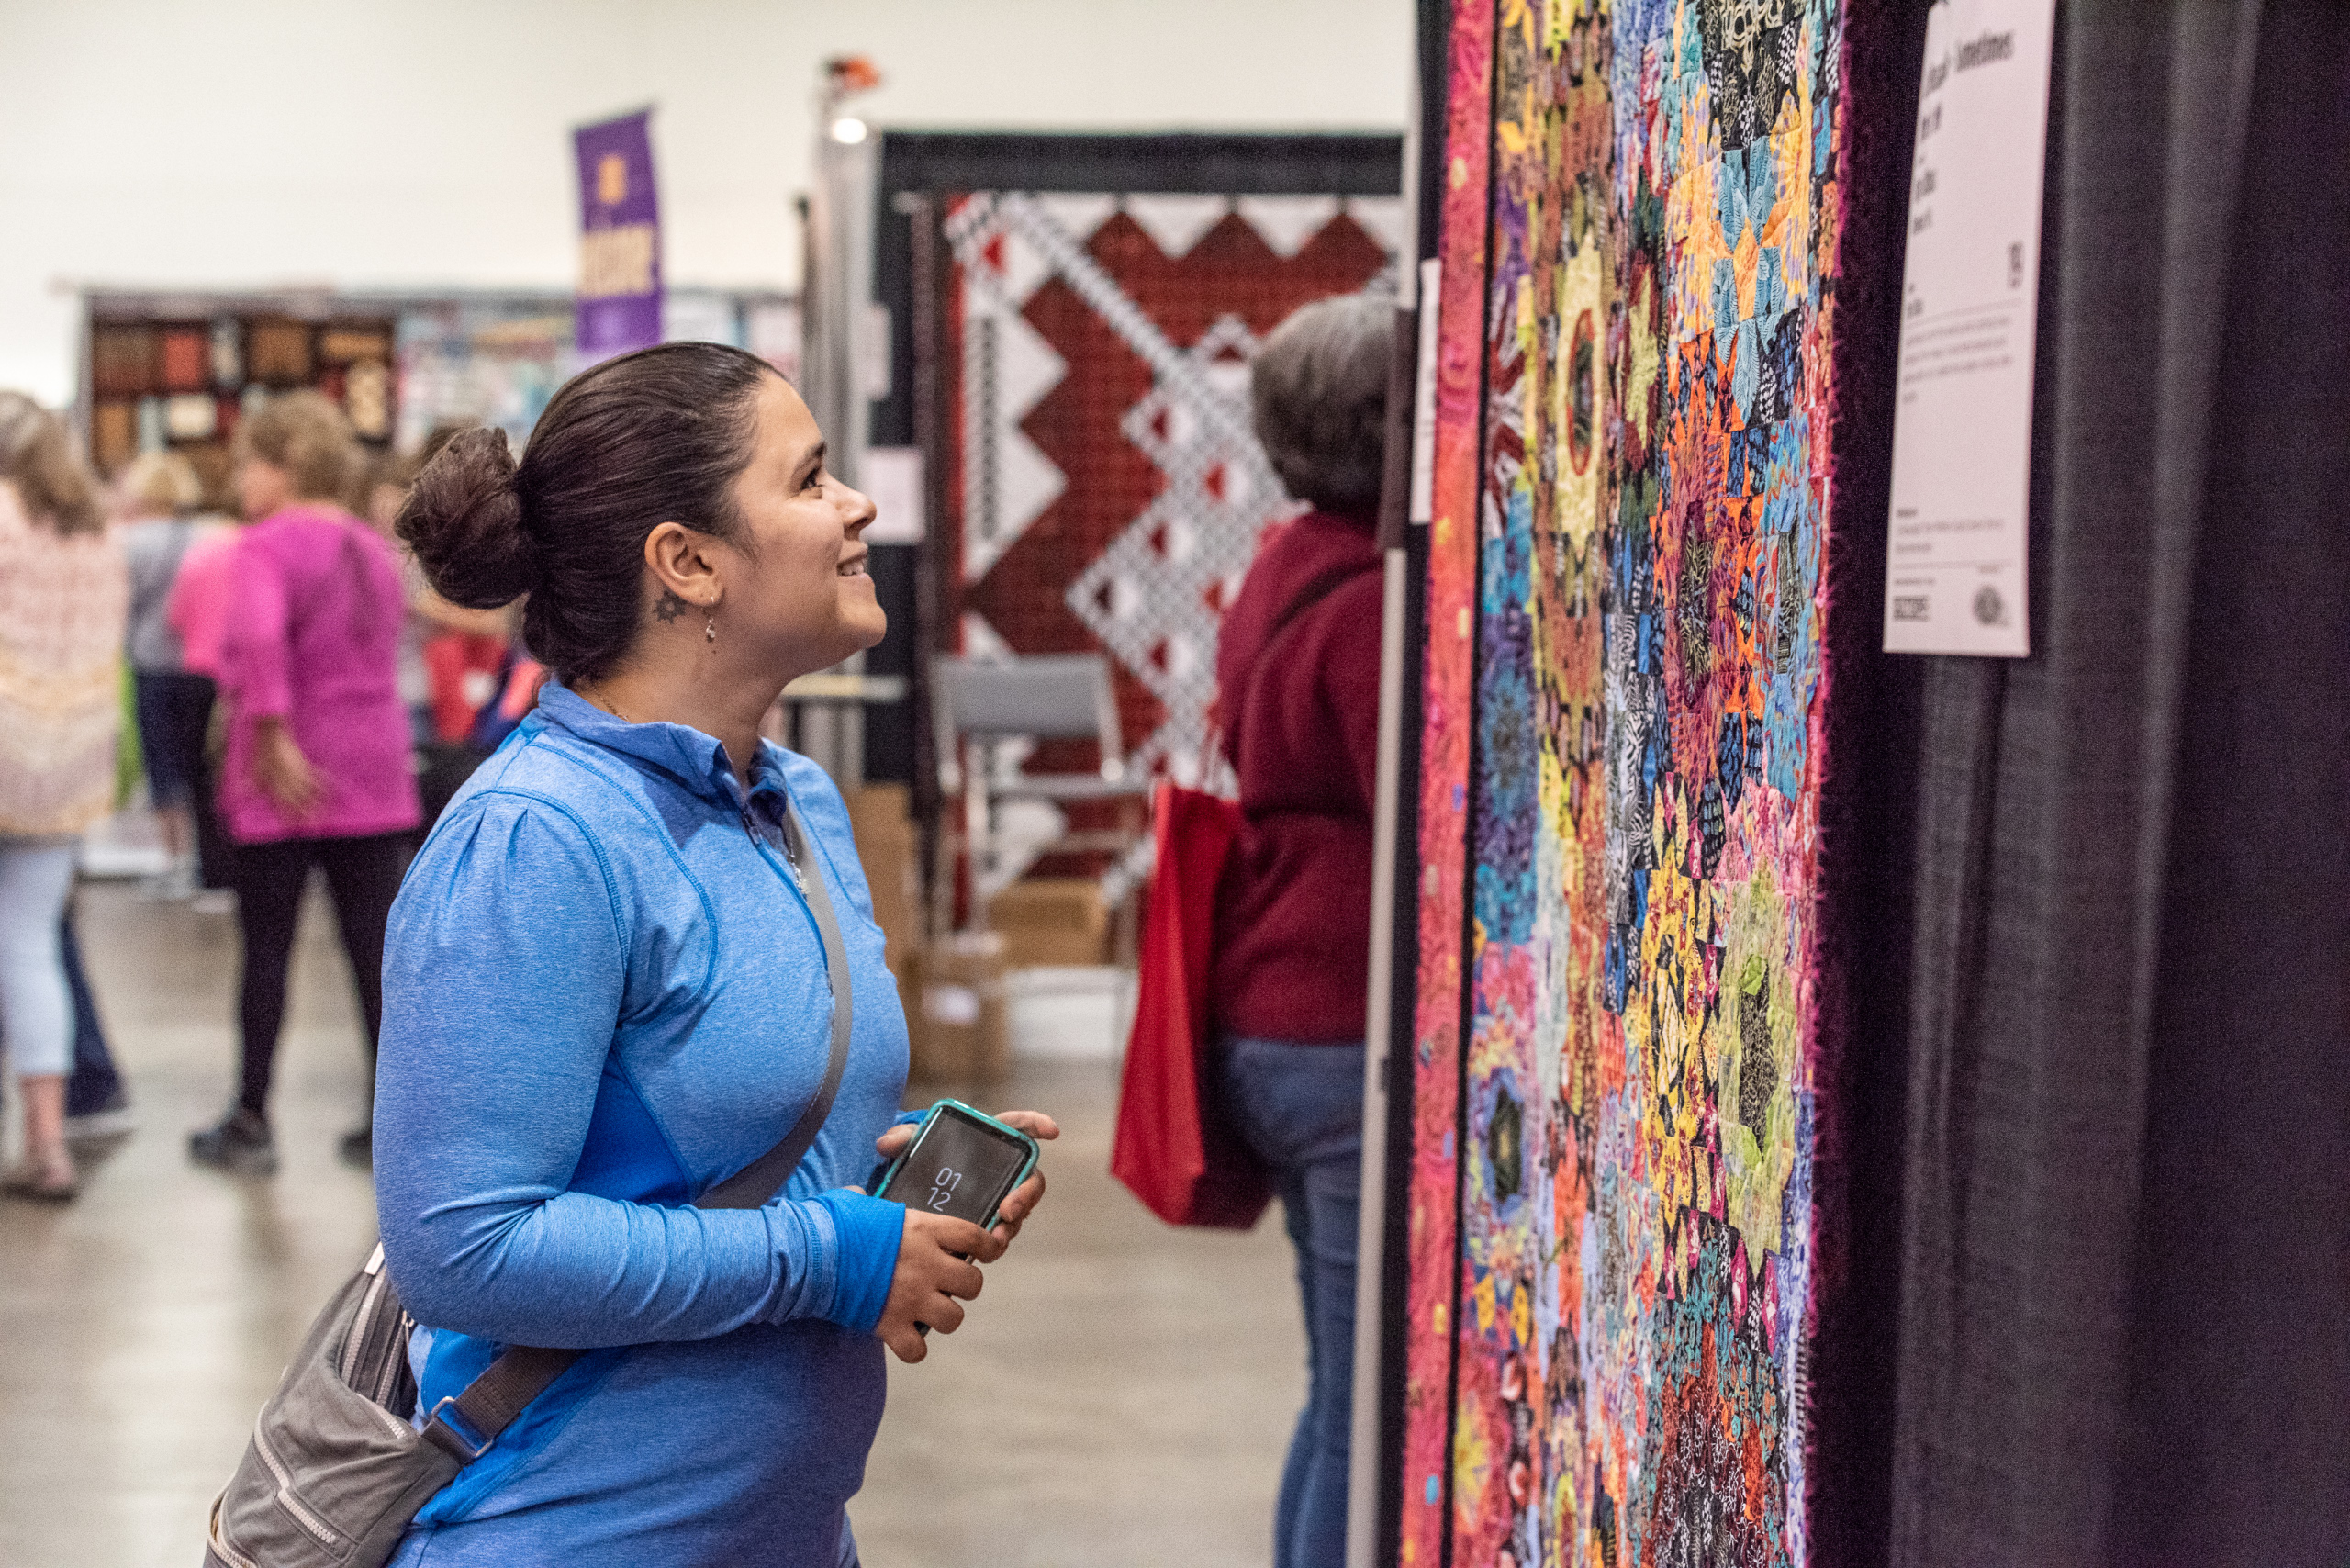 An attendee smiles while admiring a quilt in the Quilt Expo Quilt Exhibit.